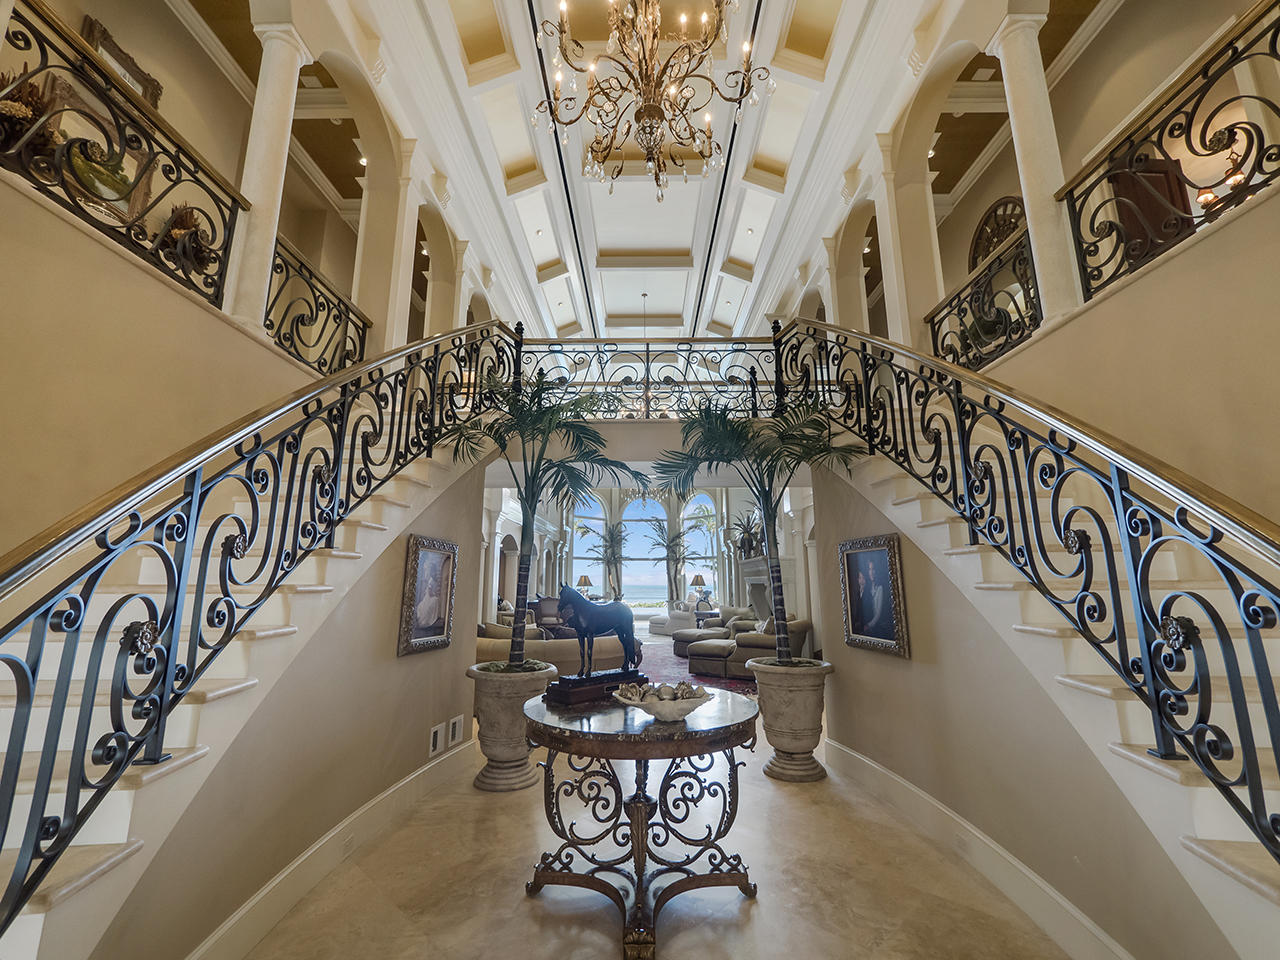 Entry/Grand Staircase